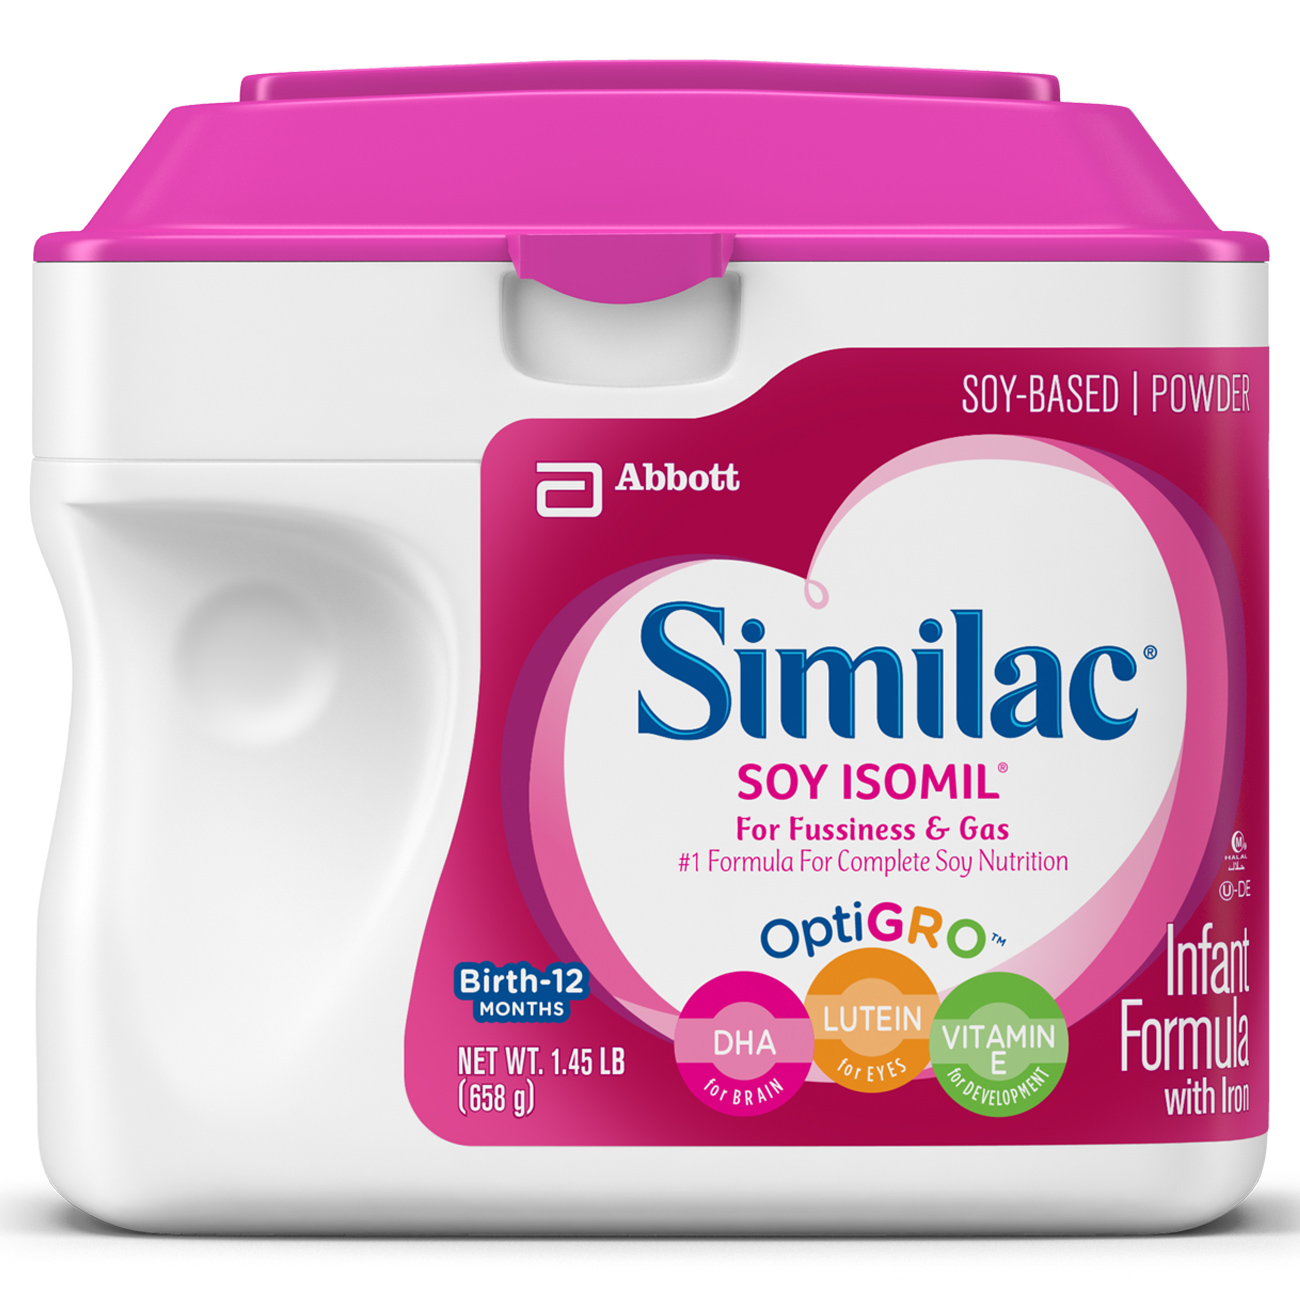 Similac Soy Isomil Infant Formula with Iron, Powder, 1.45 lb